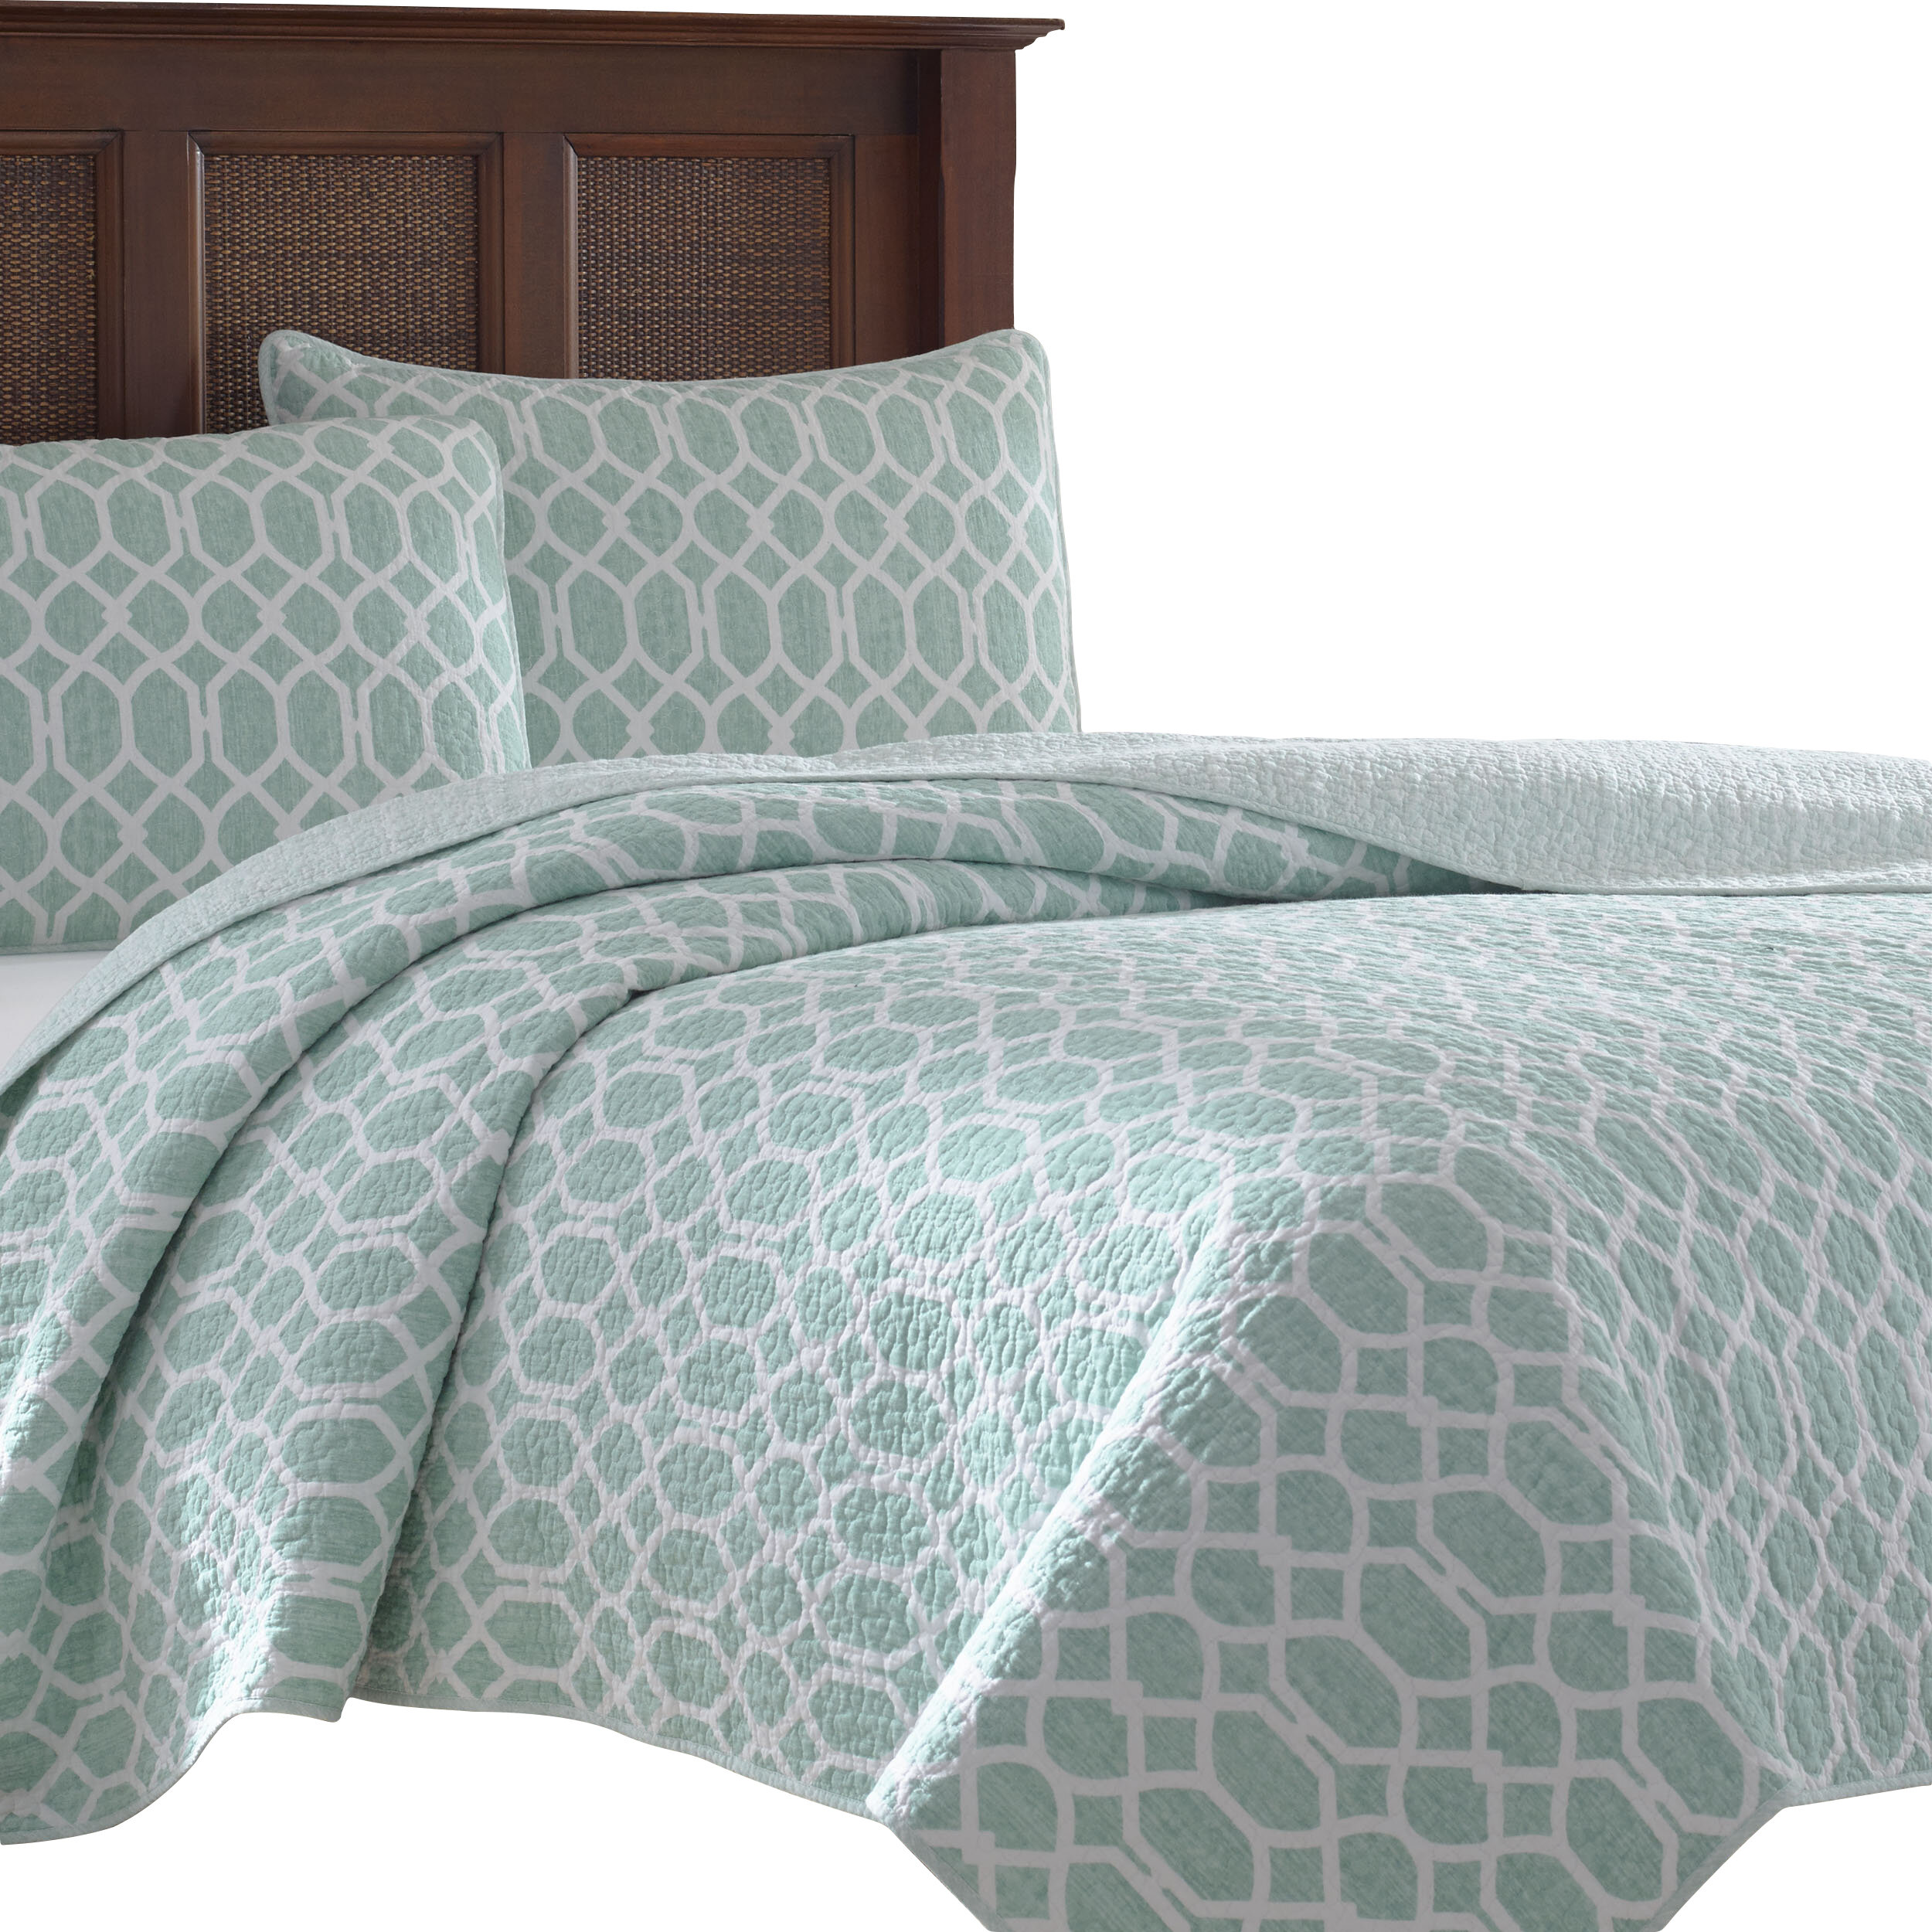 seaglass king breezer and bahama features aqua in pin collection comforter tones stripe set la green bedding a tommy design scala